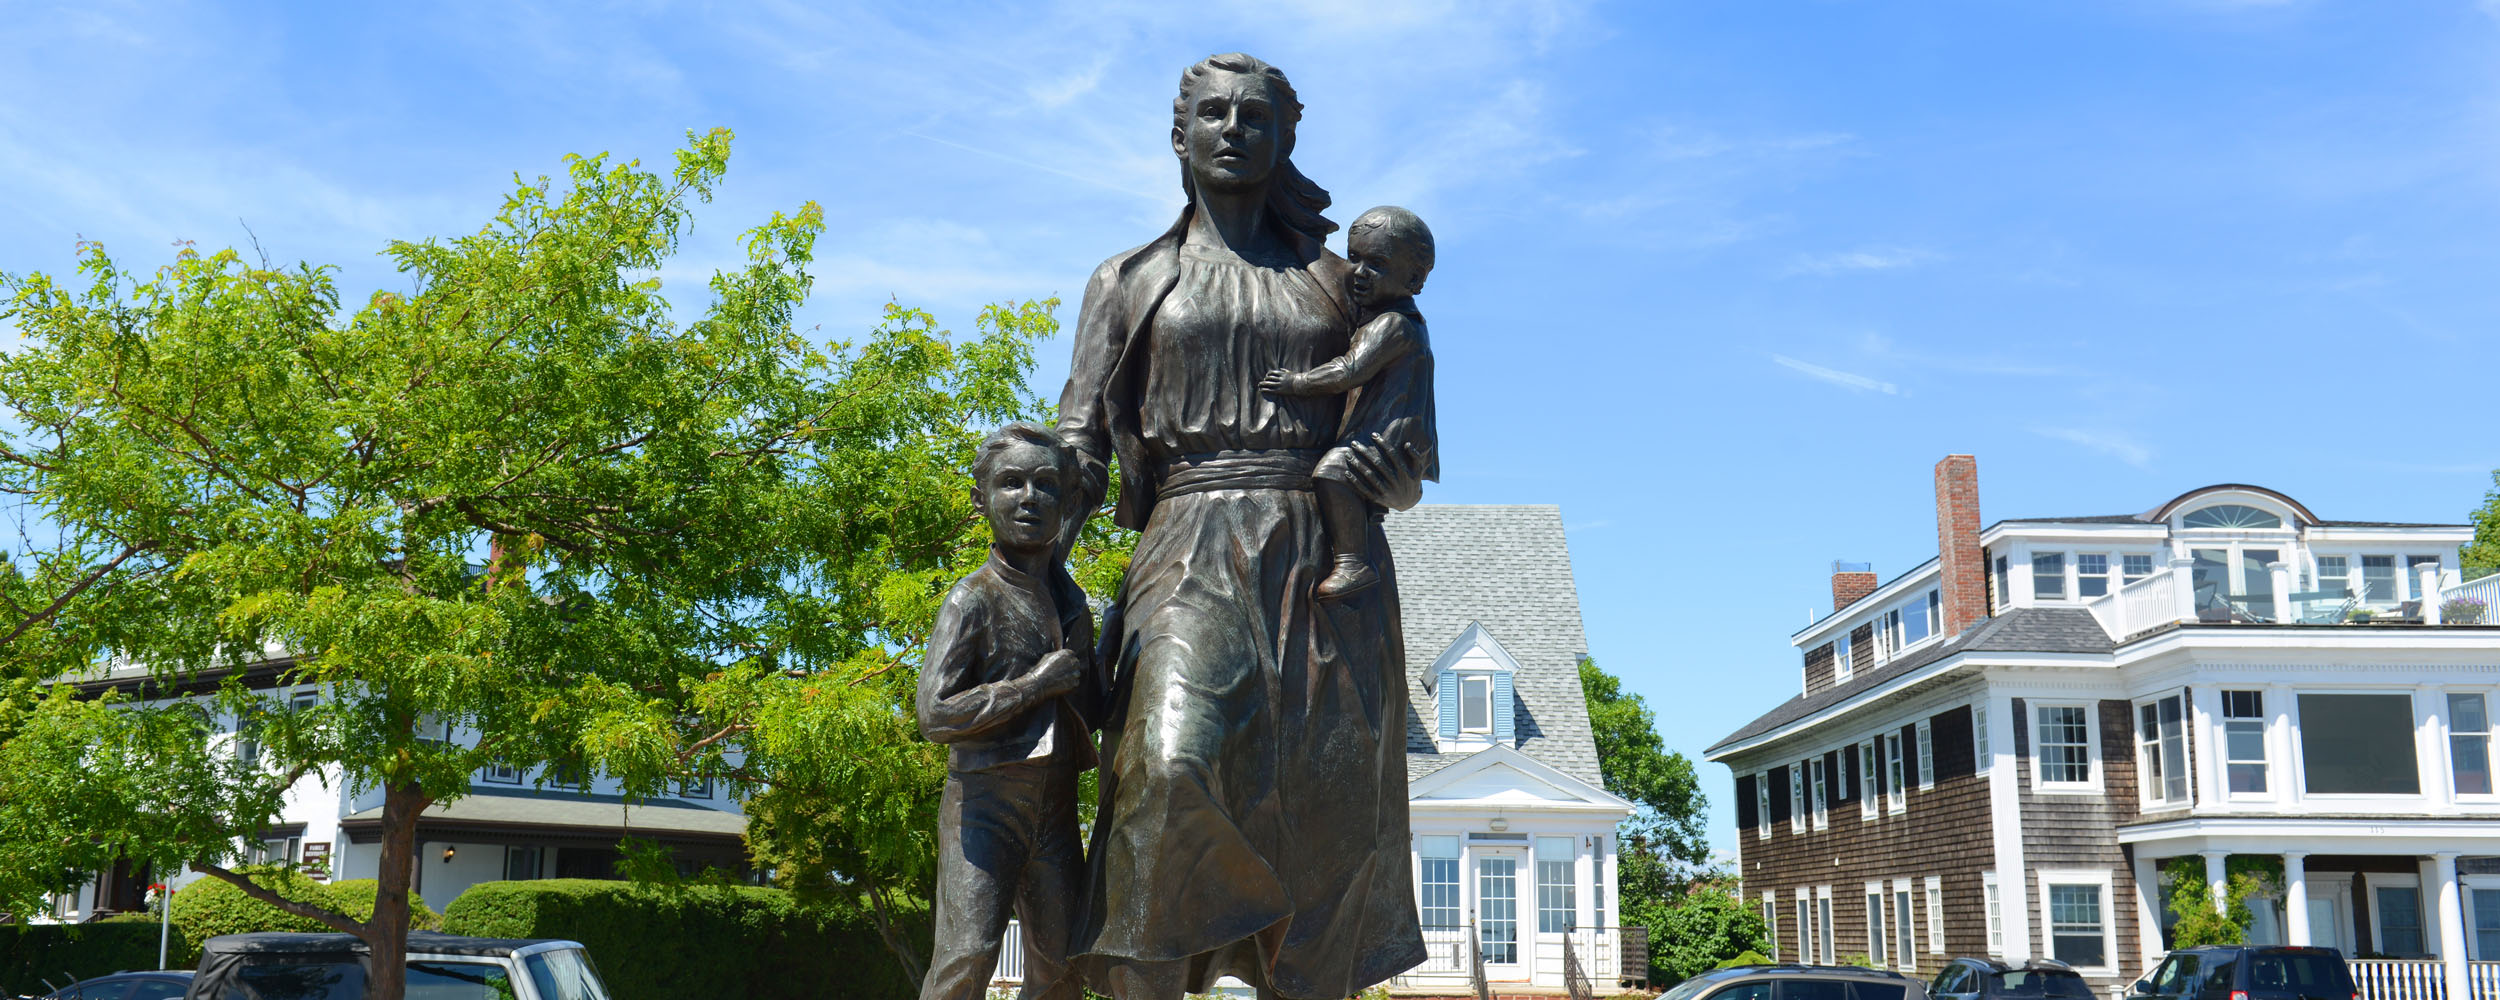 Famous Fishermen's Wives statue that stands in Gloucester, MA